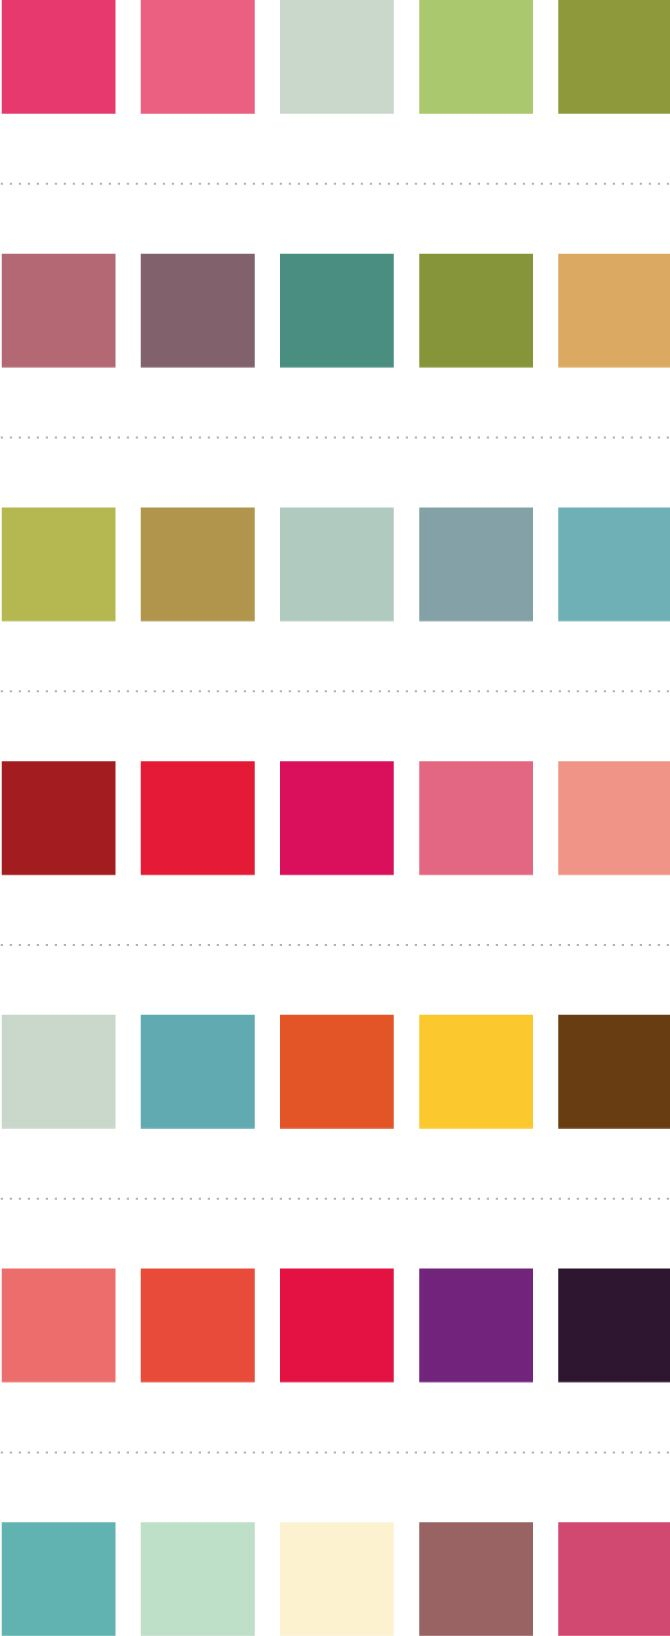 color combos for coordinating clothes for family pictures...I will definately need this